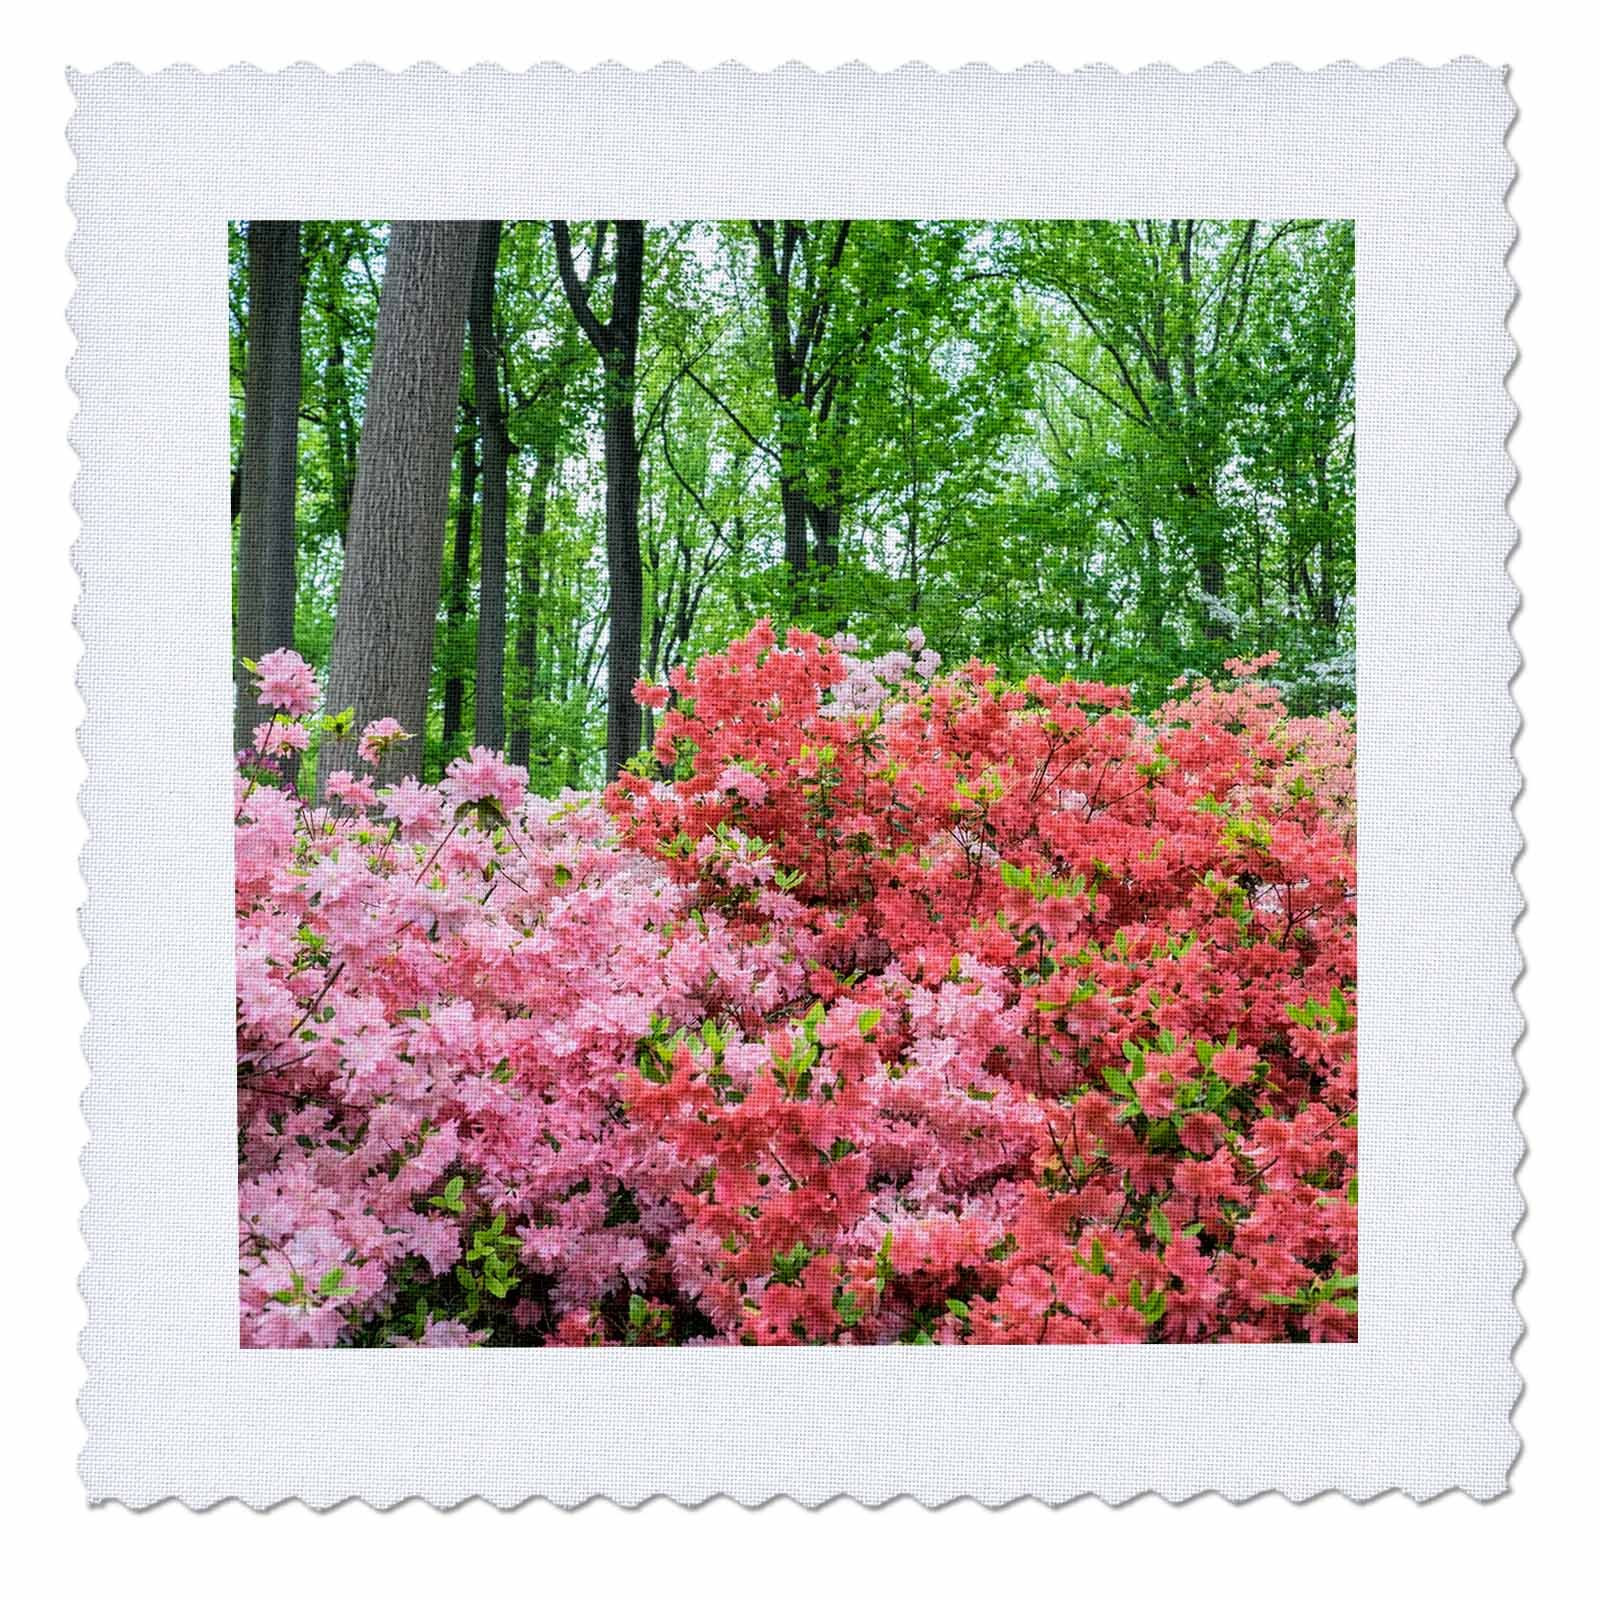 3dRose Danita Delimont - Forests - Azaleas blooming in the forest, Azalea Woods, Winterthur, Delaware - 12x12 inch quilt square (qs_278839_4)